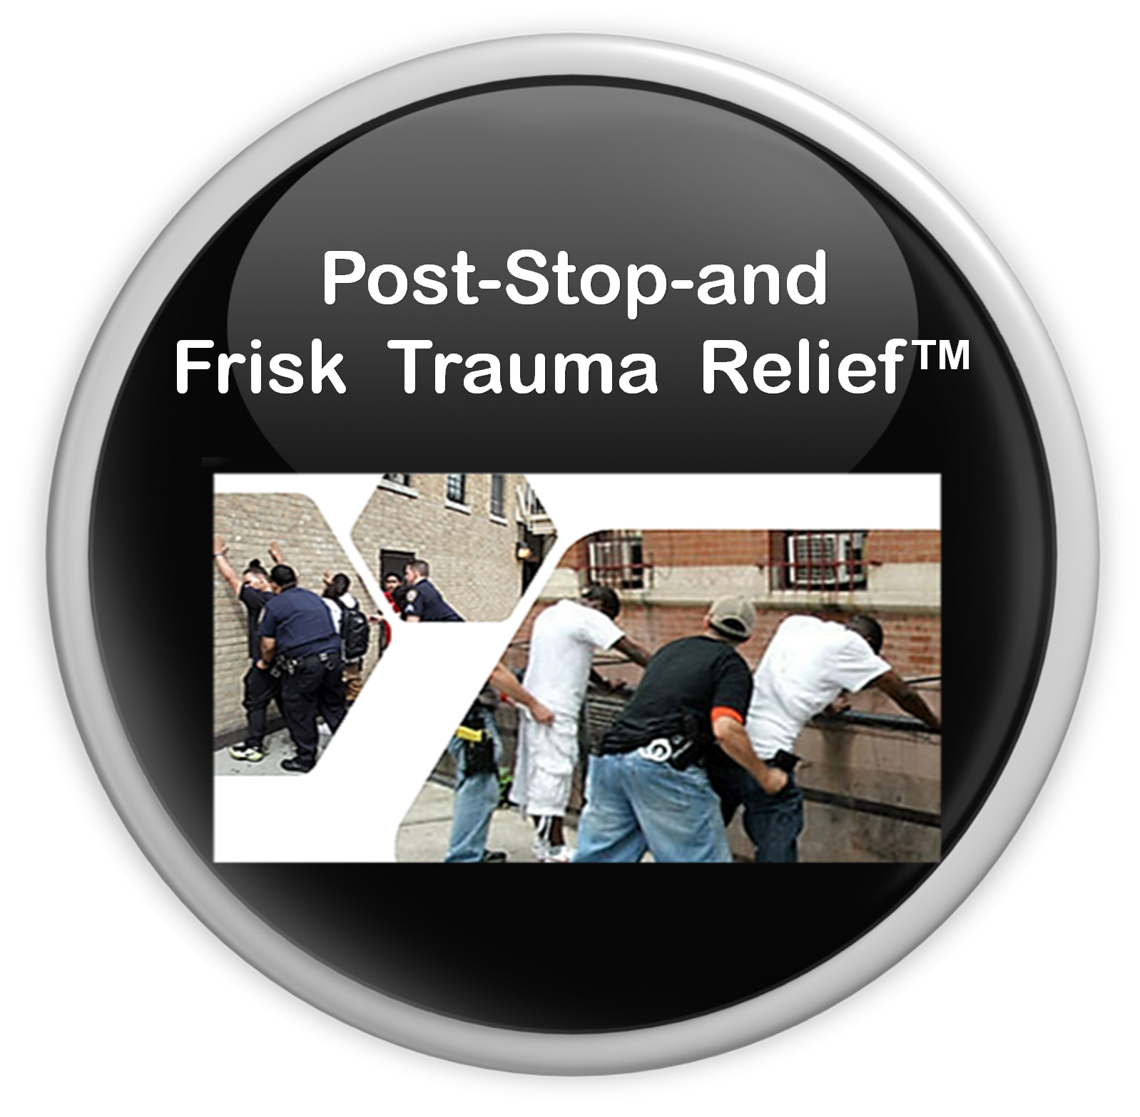 Post Stop-and-Frisk Trauma Relief